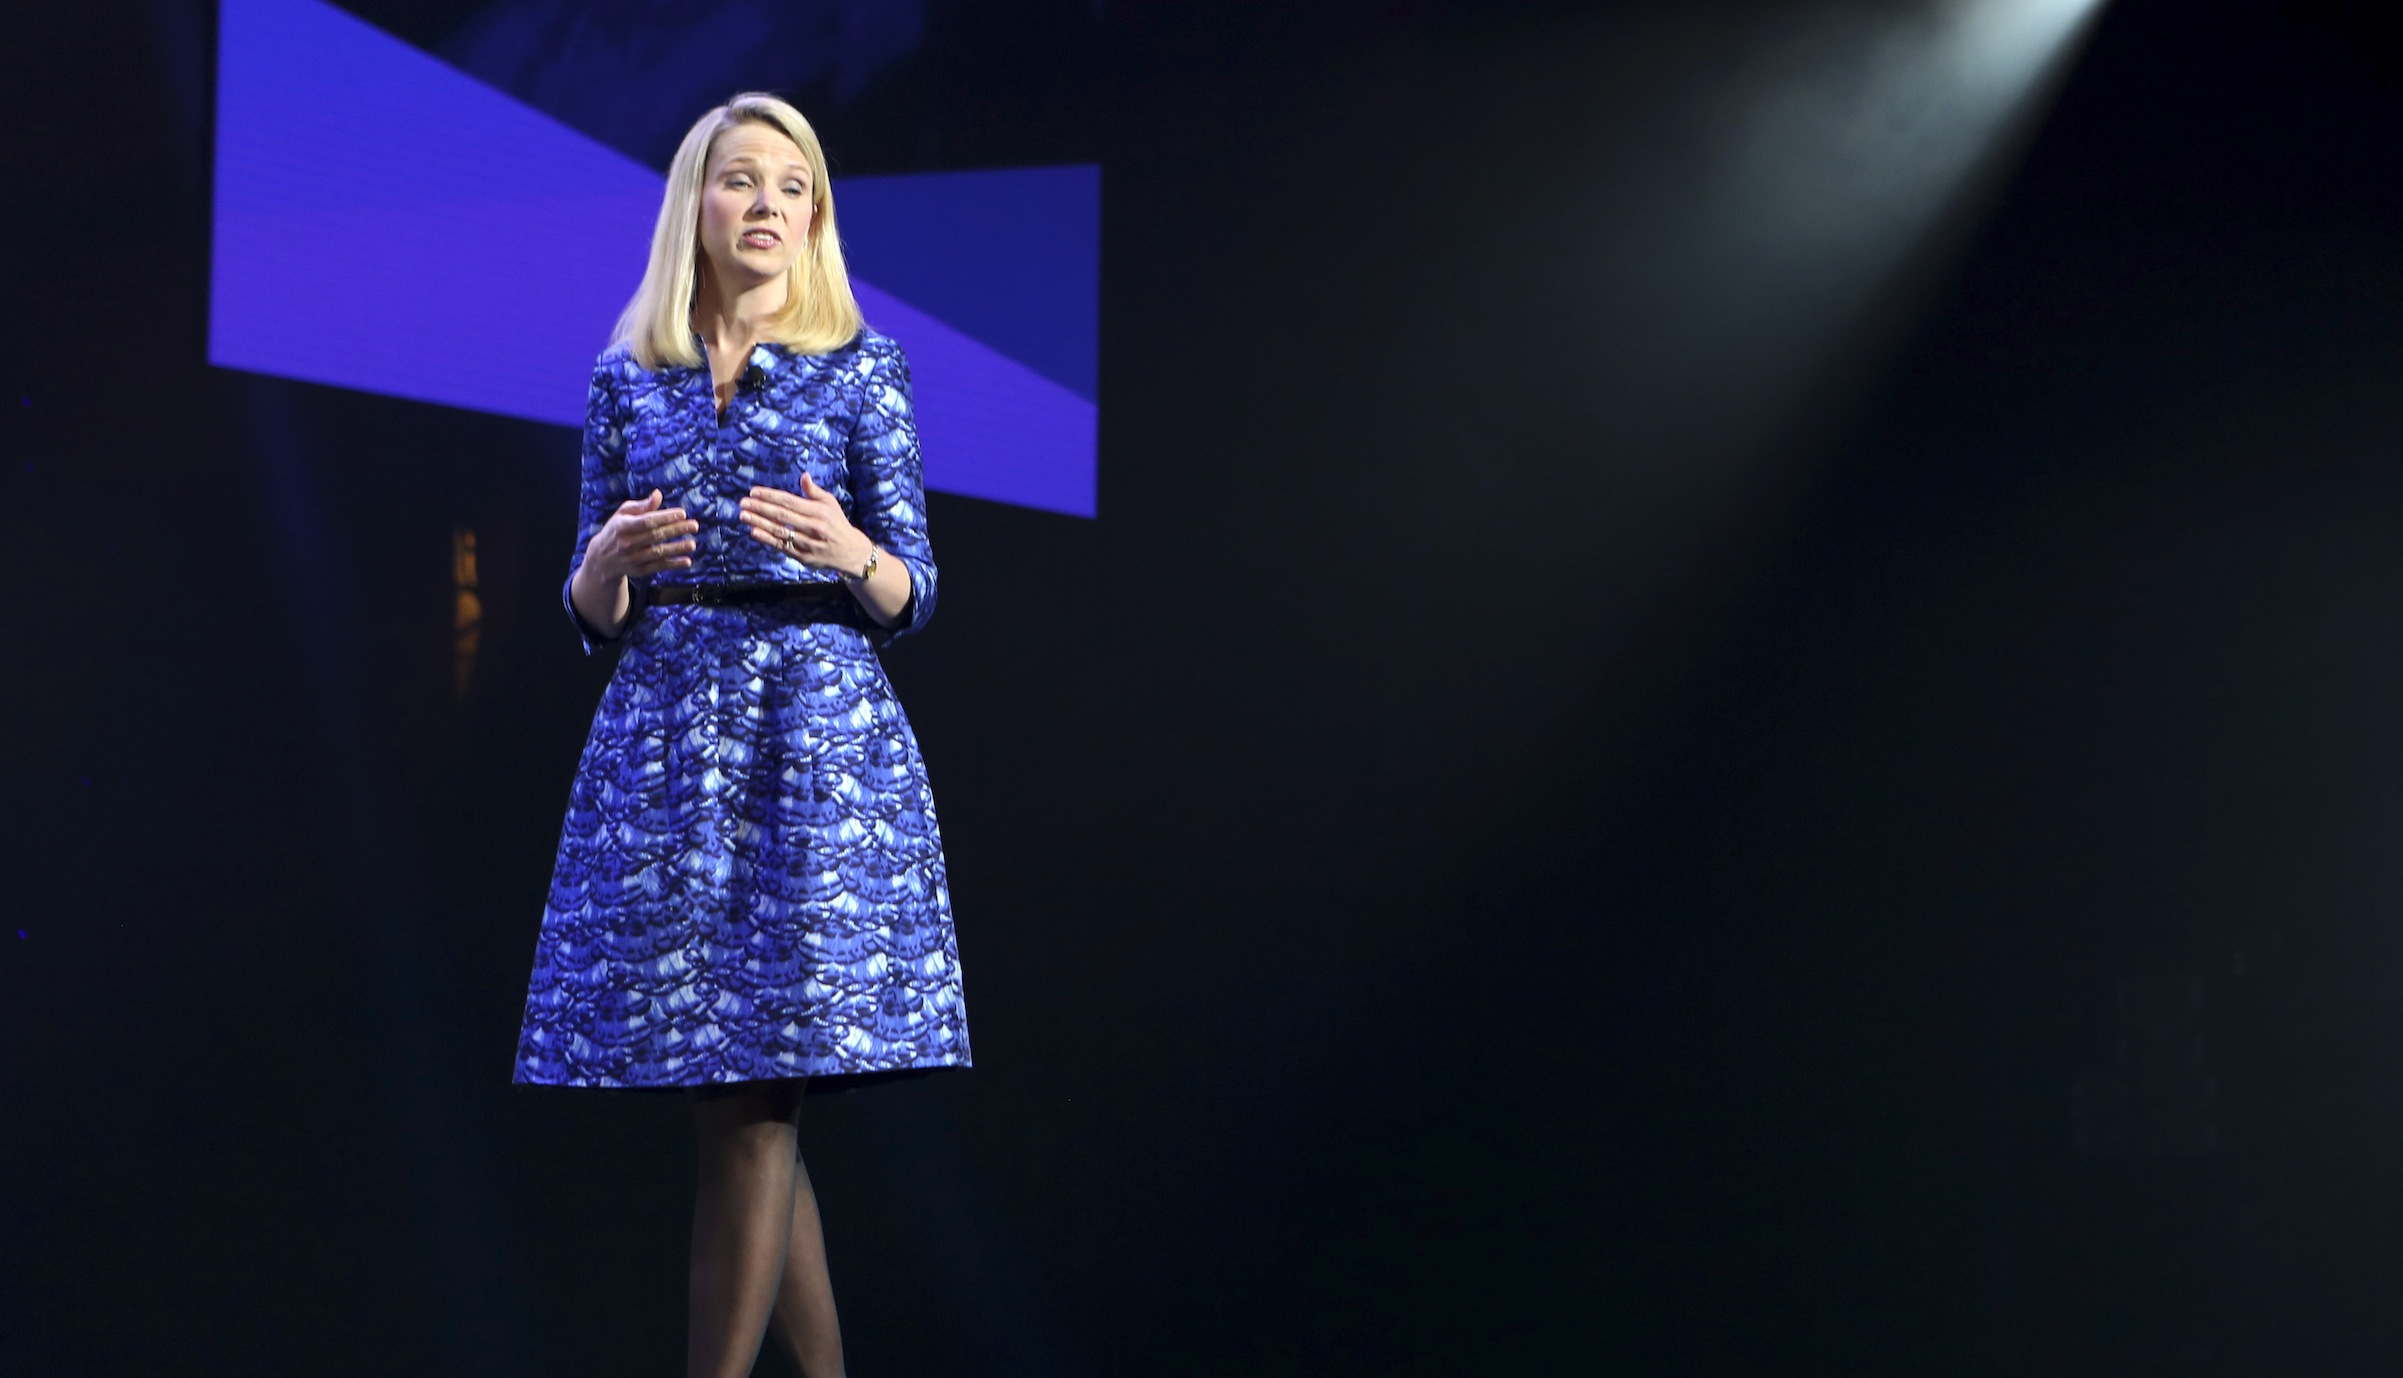 Yahoo CEO Marissa Mayer speaks during her keynote address at the annual Consumer Electronics Show (CES) in Las Vegas, Nevada January 7, 2014. REUTERS/Robert Galbraith  (UNITED STATES - Tags: SCIENCE TECHNOLOGY BUSINESS) - RTX175NU